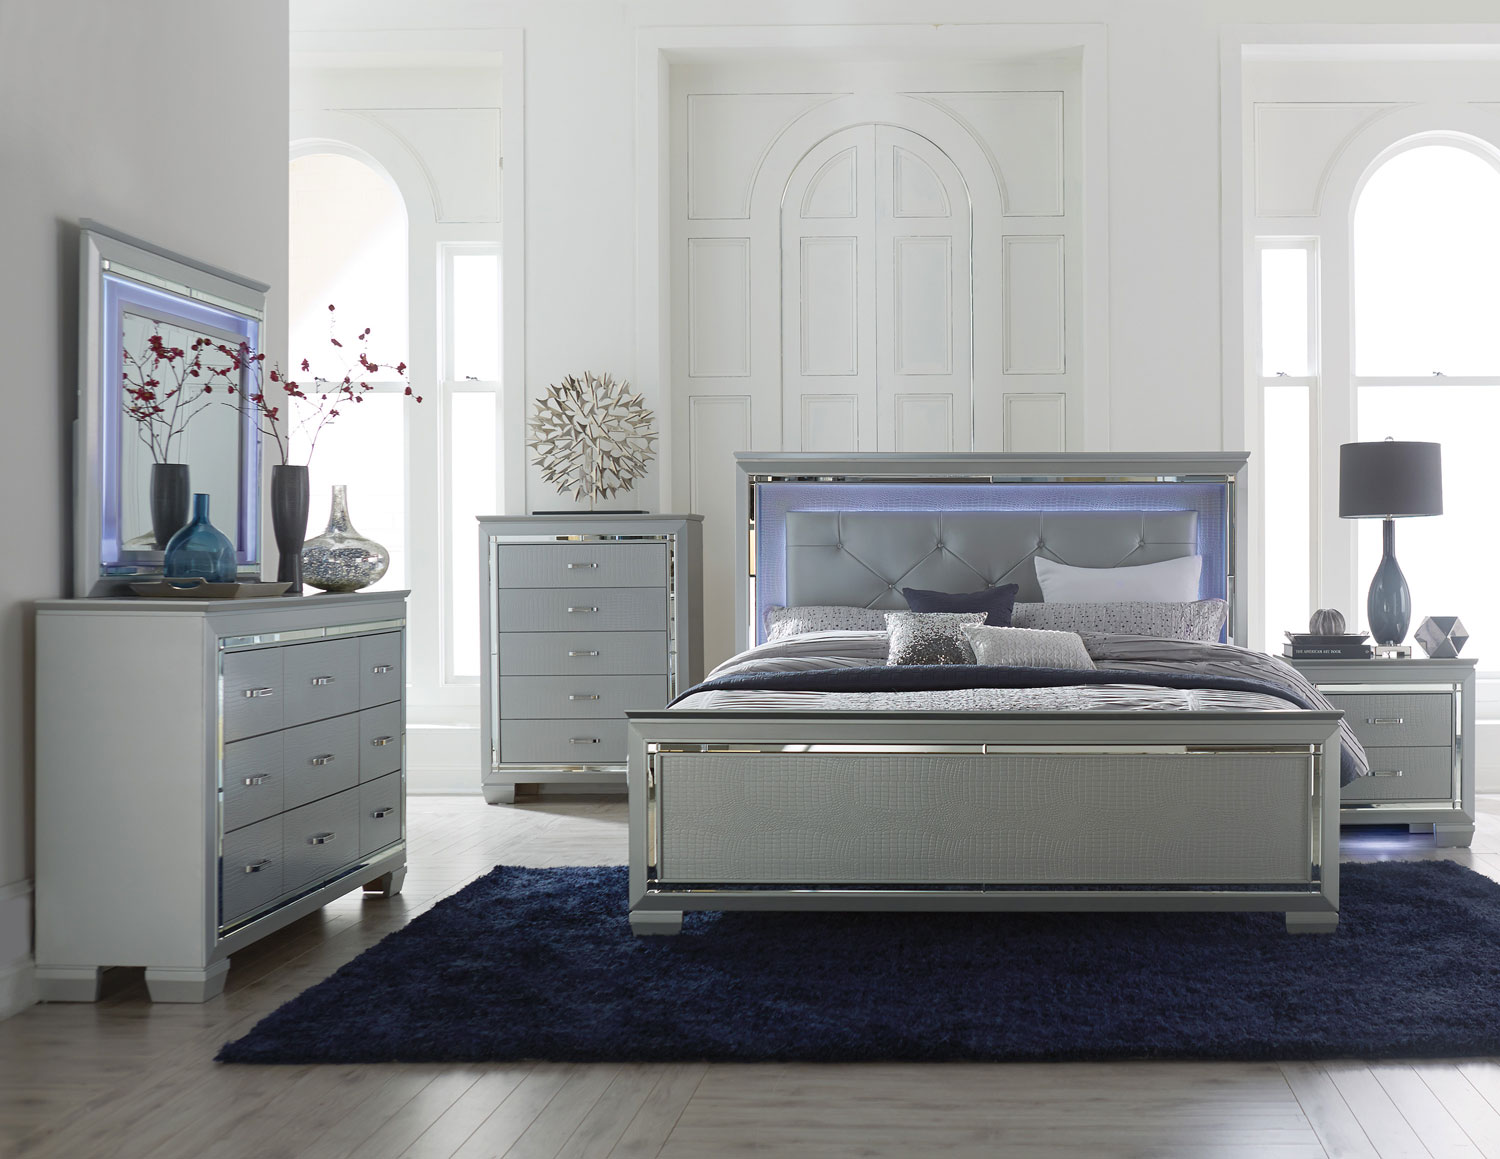 Homelegance Allura Bedroom Set With LED Lighting